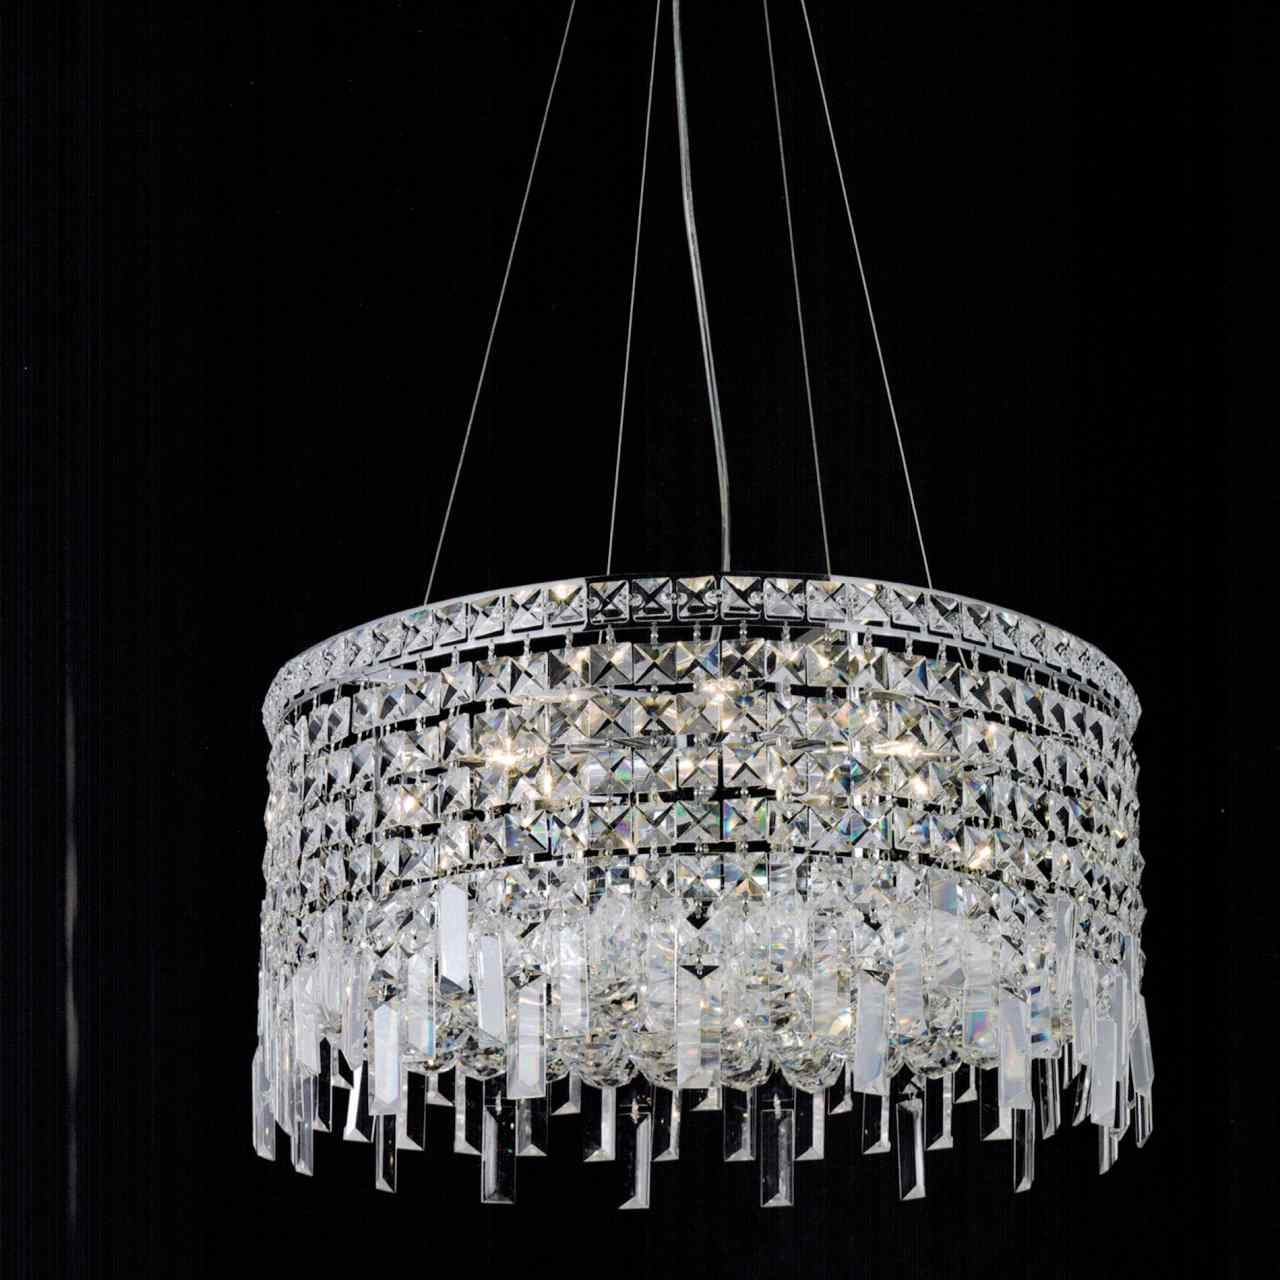 Brizzo Lighting Stores 16 Bossolo Transitional Crystal Round Pertaining To Chrome And Crystal Chandeliers (View 11 of 25)